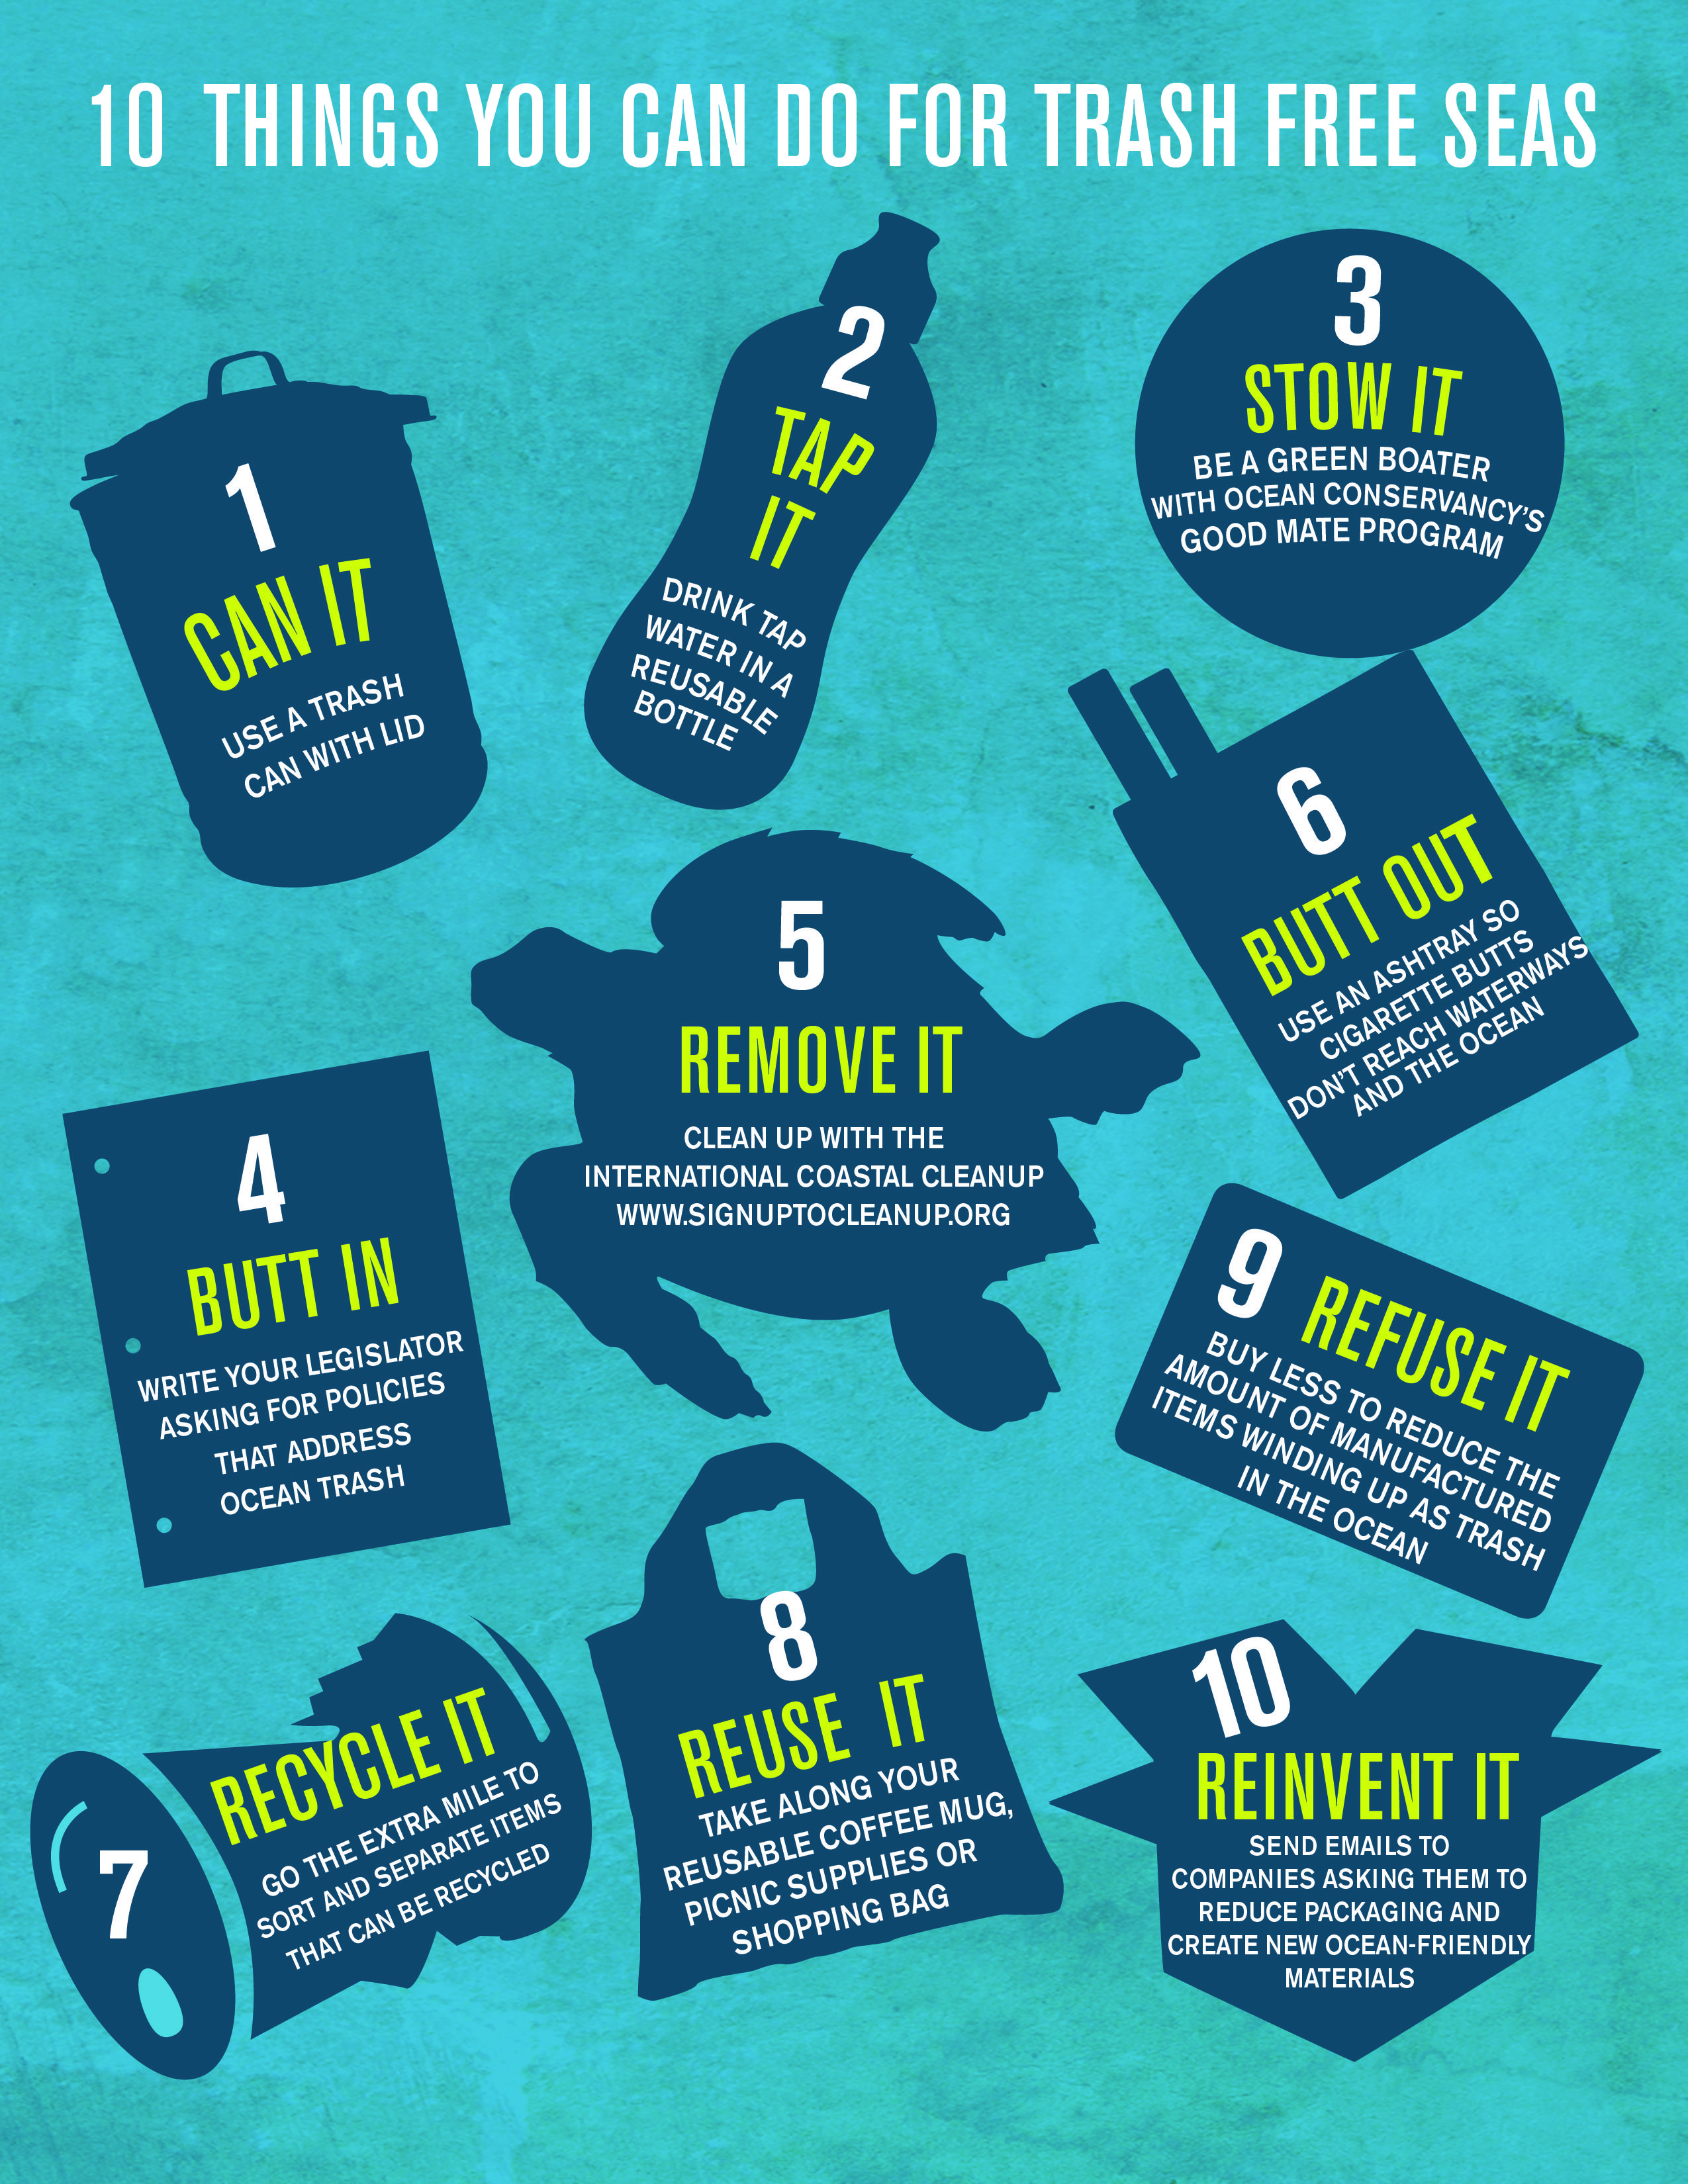 10 Things You Can Do For Trash Free Seas. We do some work to help